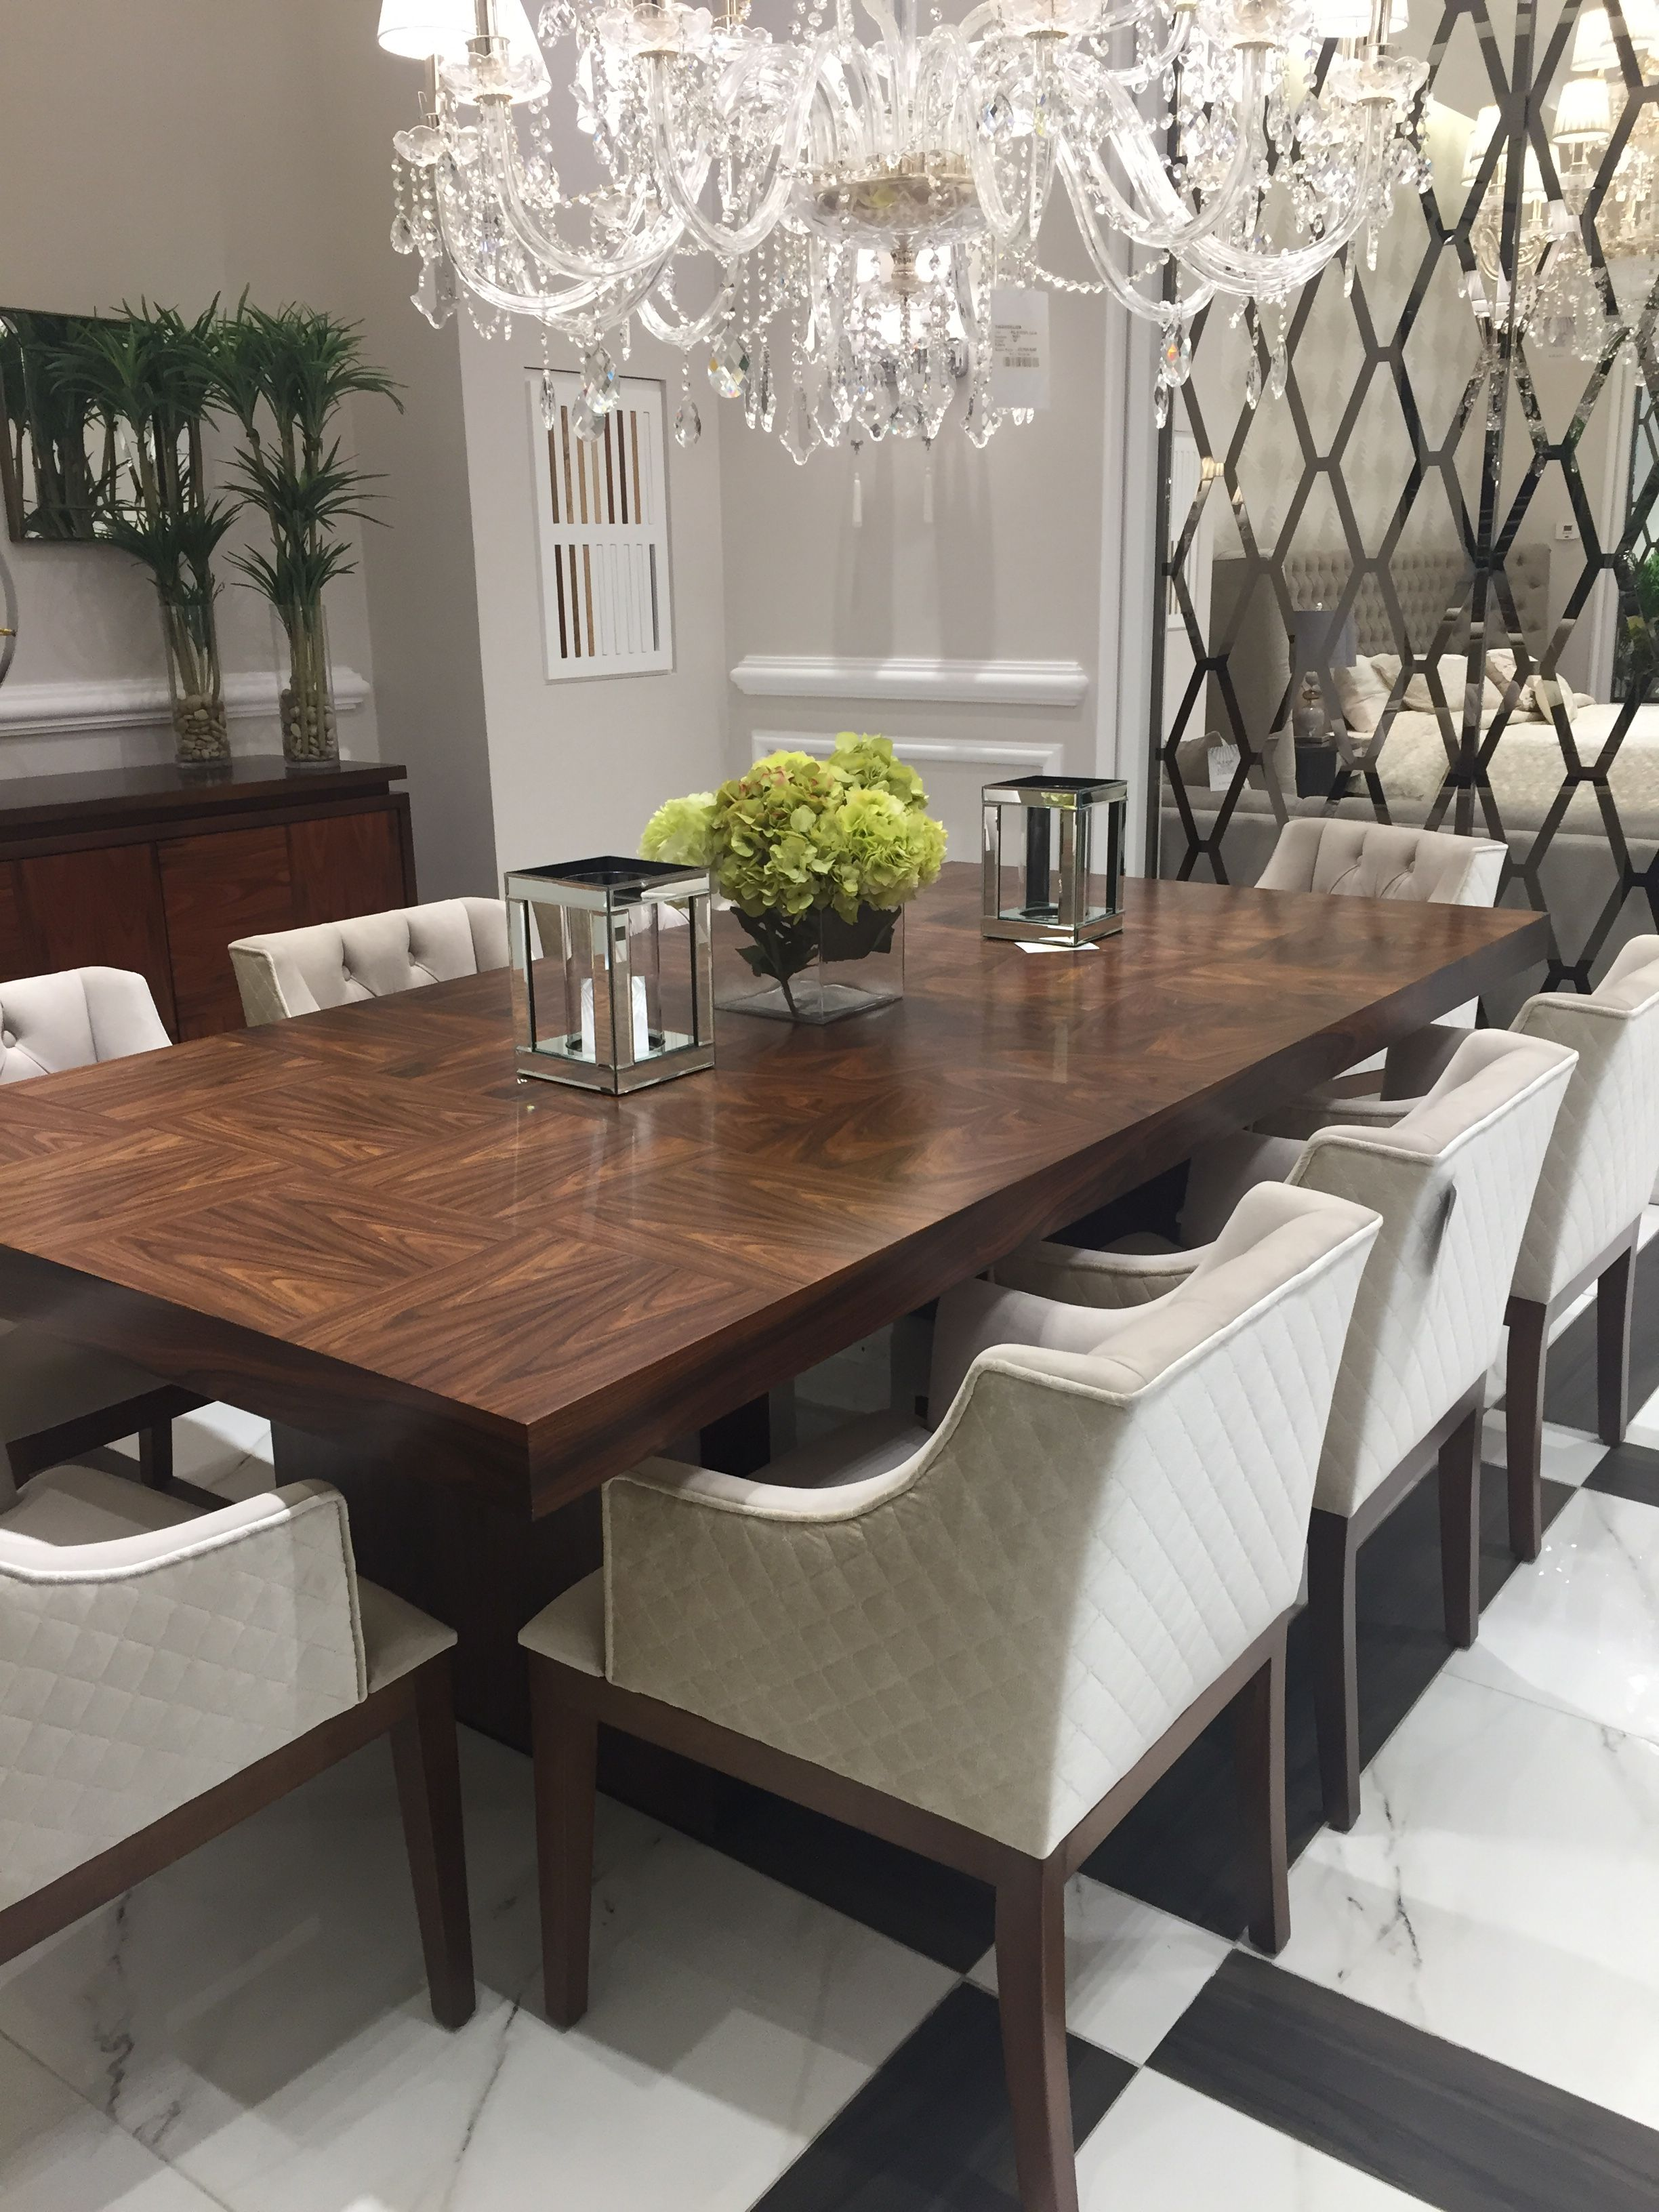 Pin By P La Jarvinen On Home Art Deco Dining Room Modern Dining Room Set Contemporary Dining Room Sets